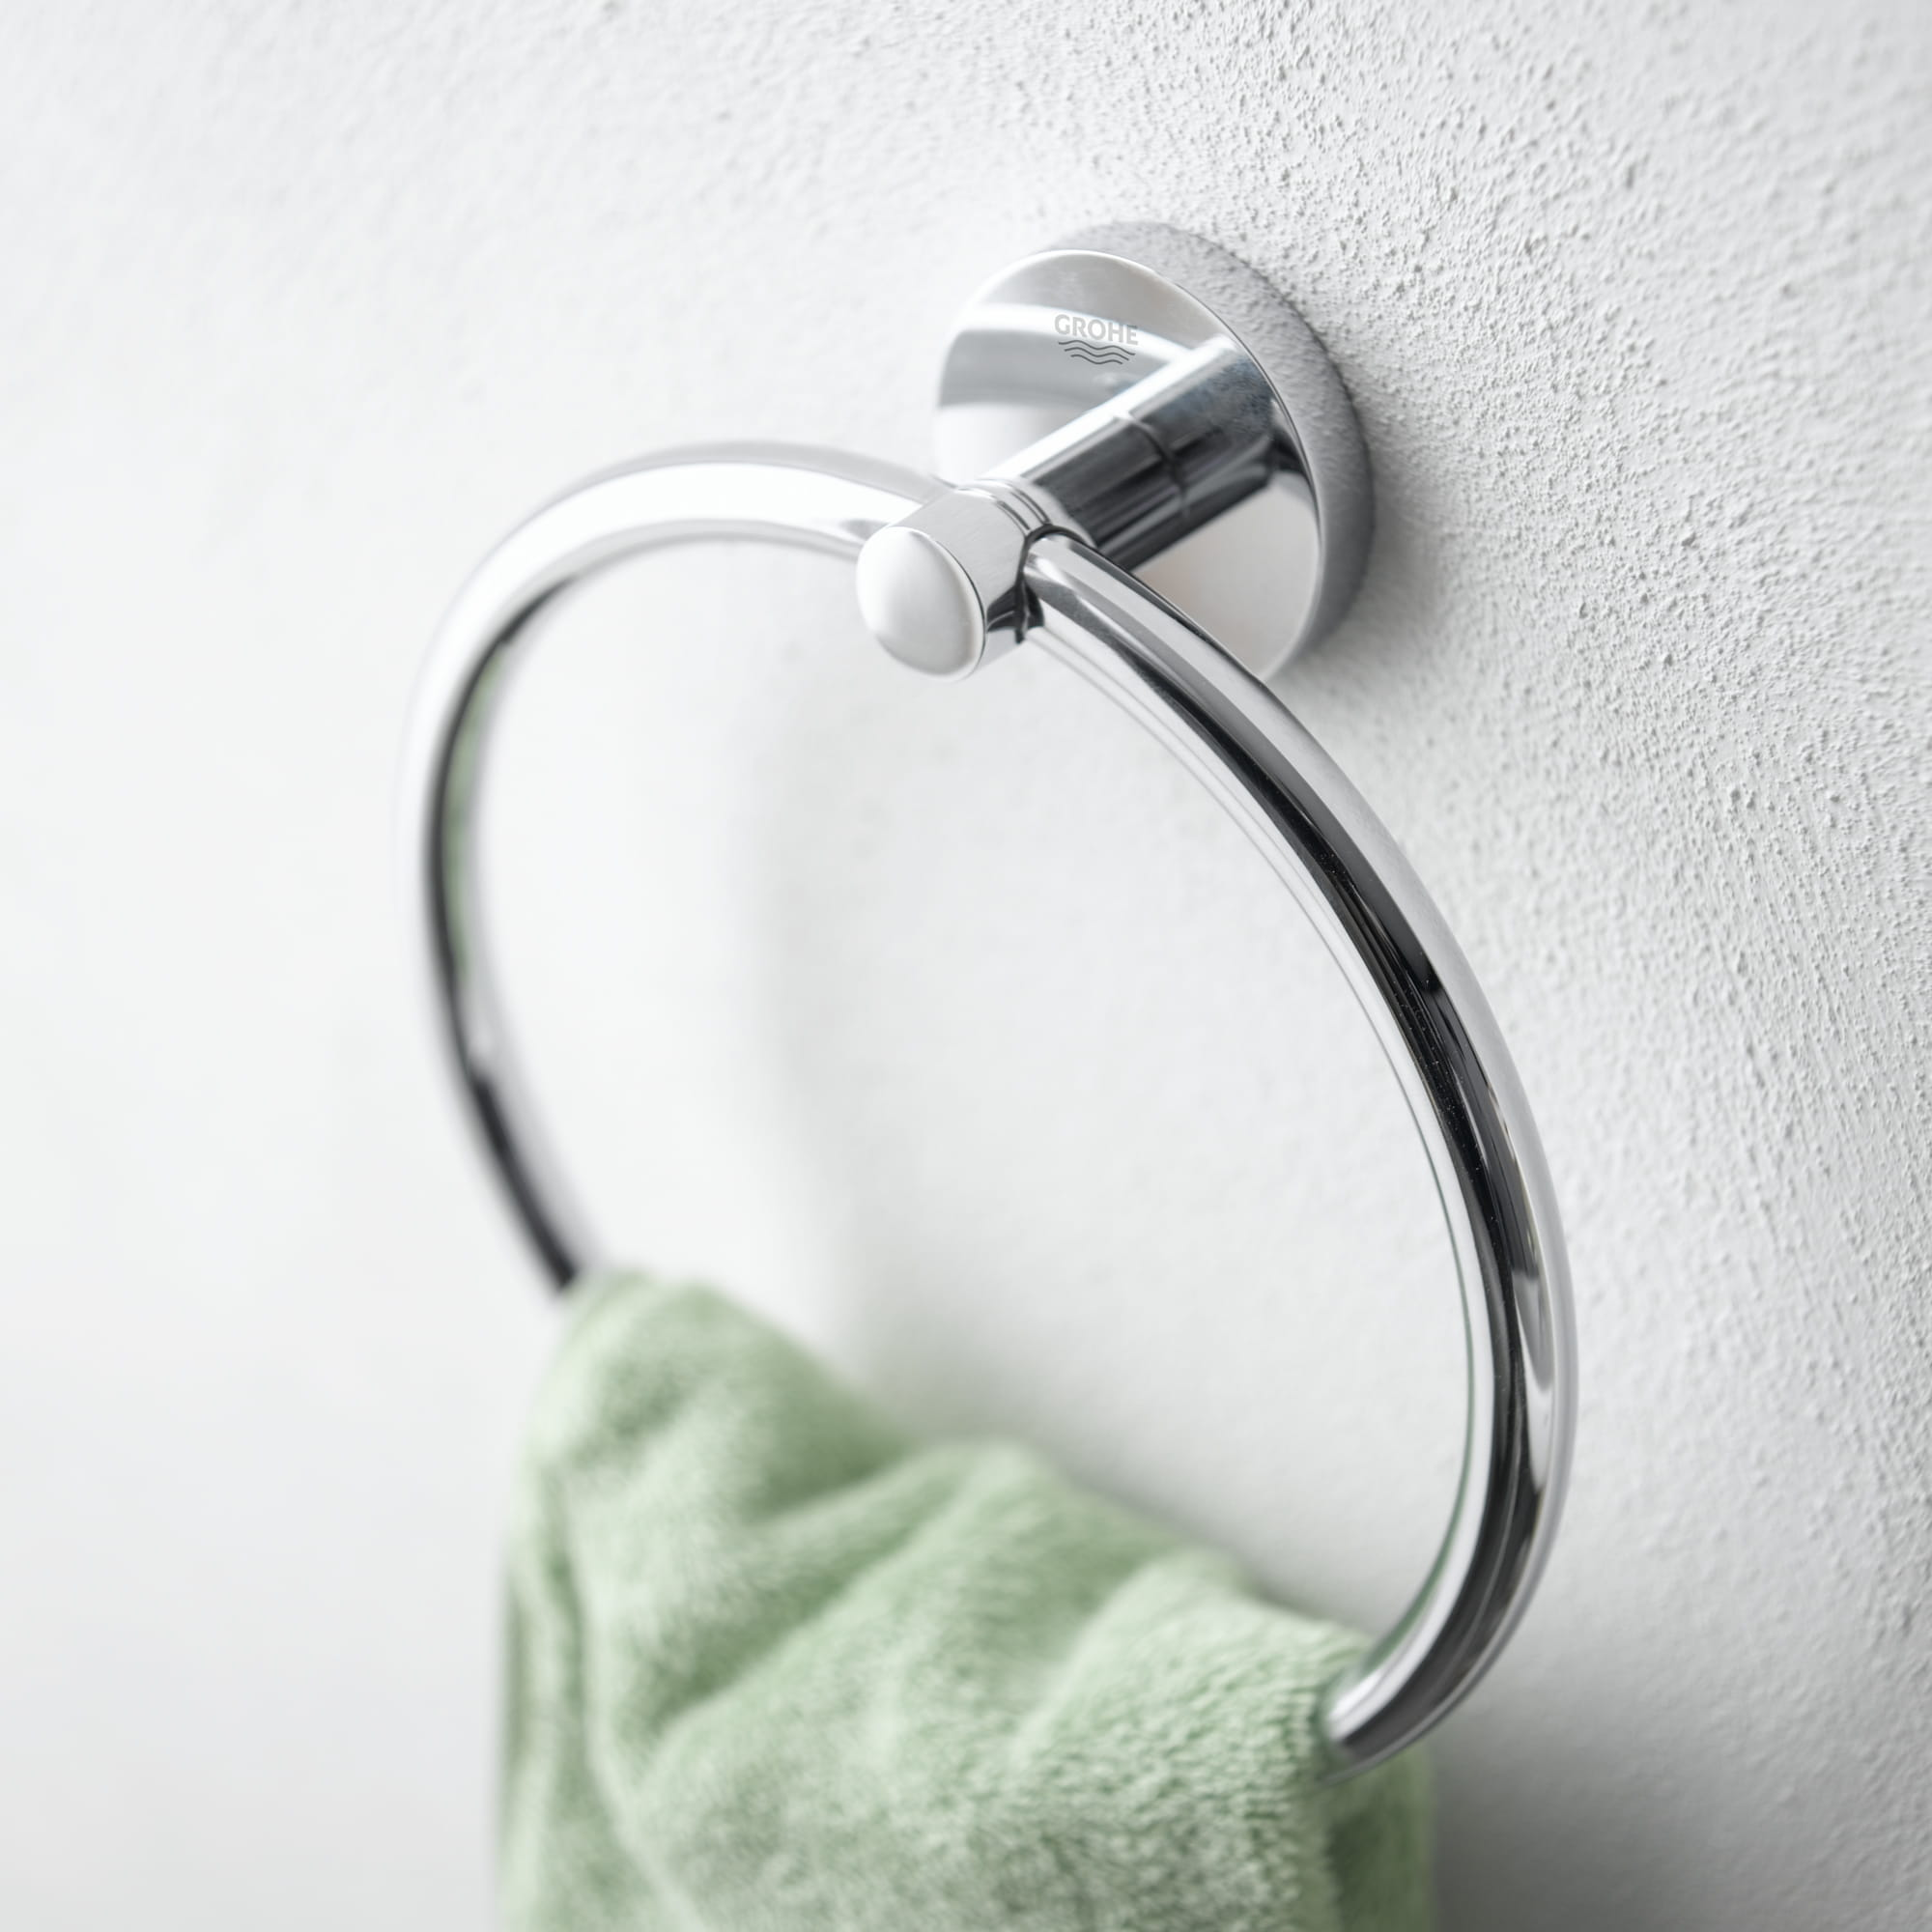 GROHE Towel Ring with Green Towel